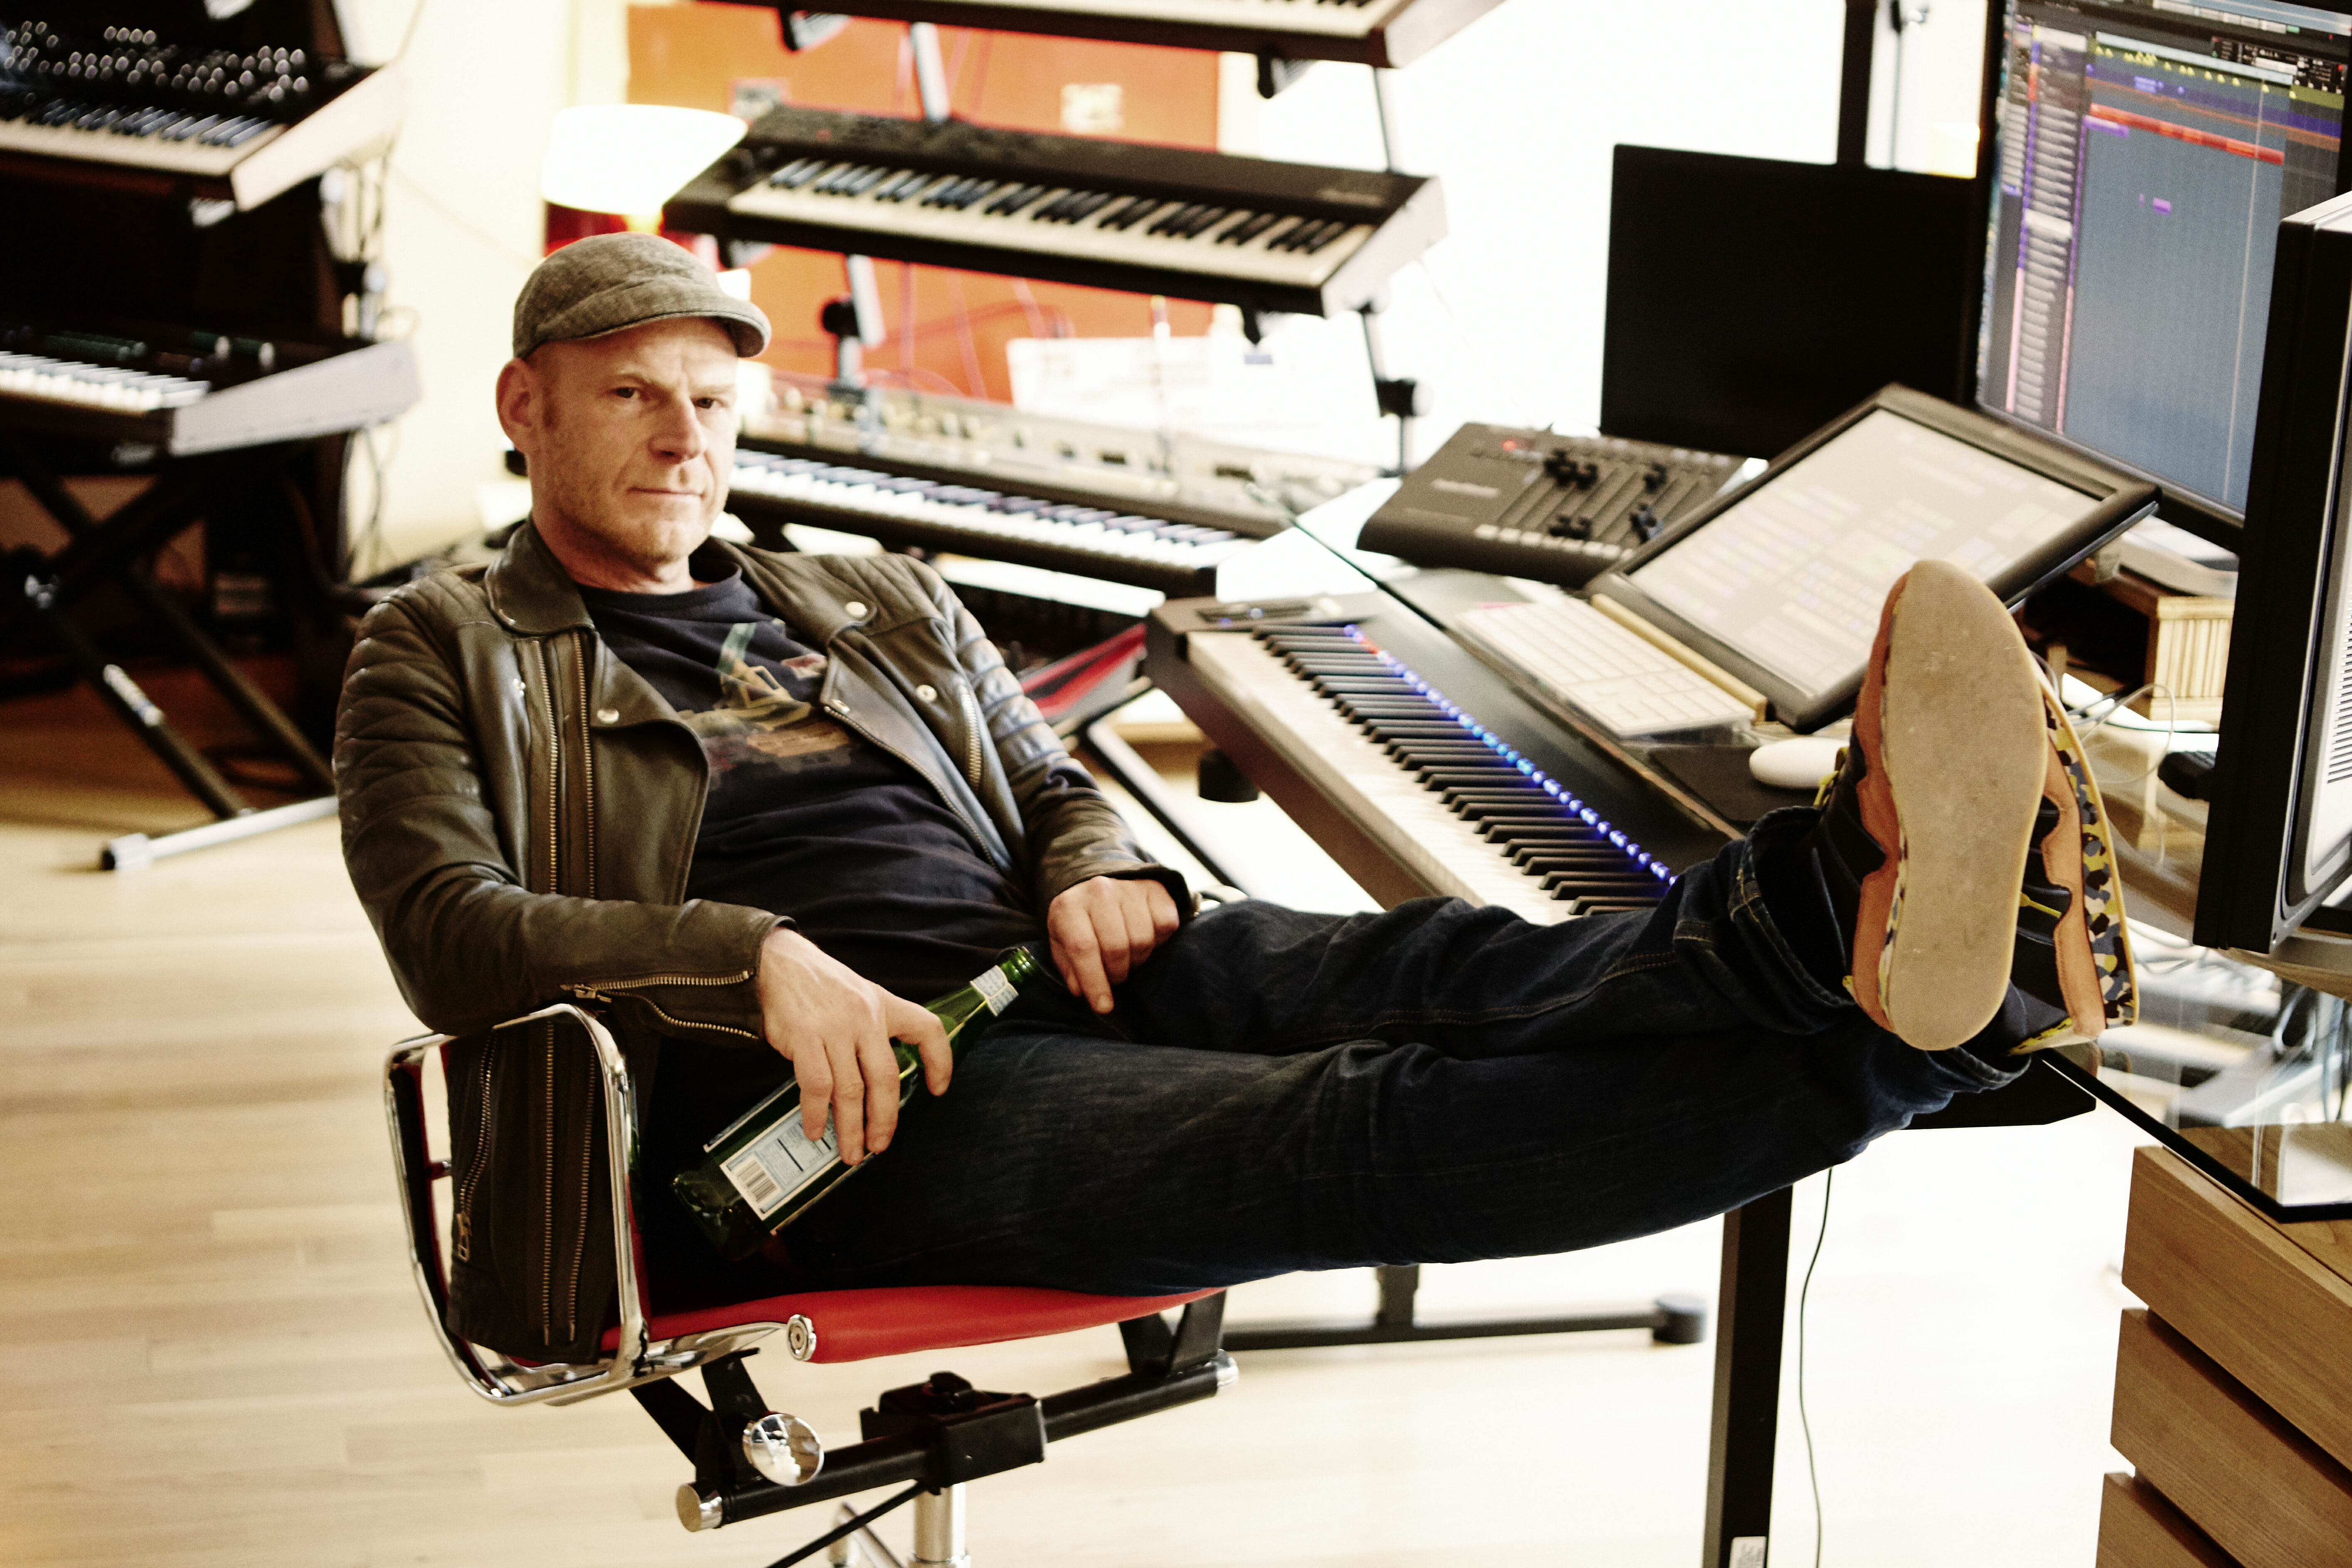 Watch Armin van Buuren visit Junkie XL's studioTom Holkenborg Junkie l Press Photo 30 Download